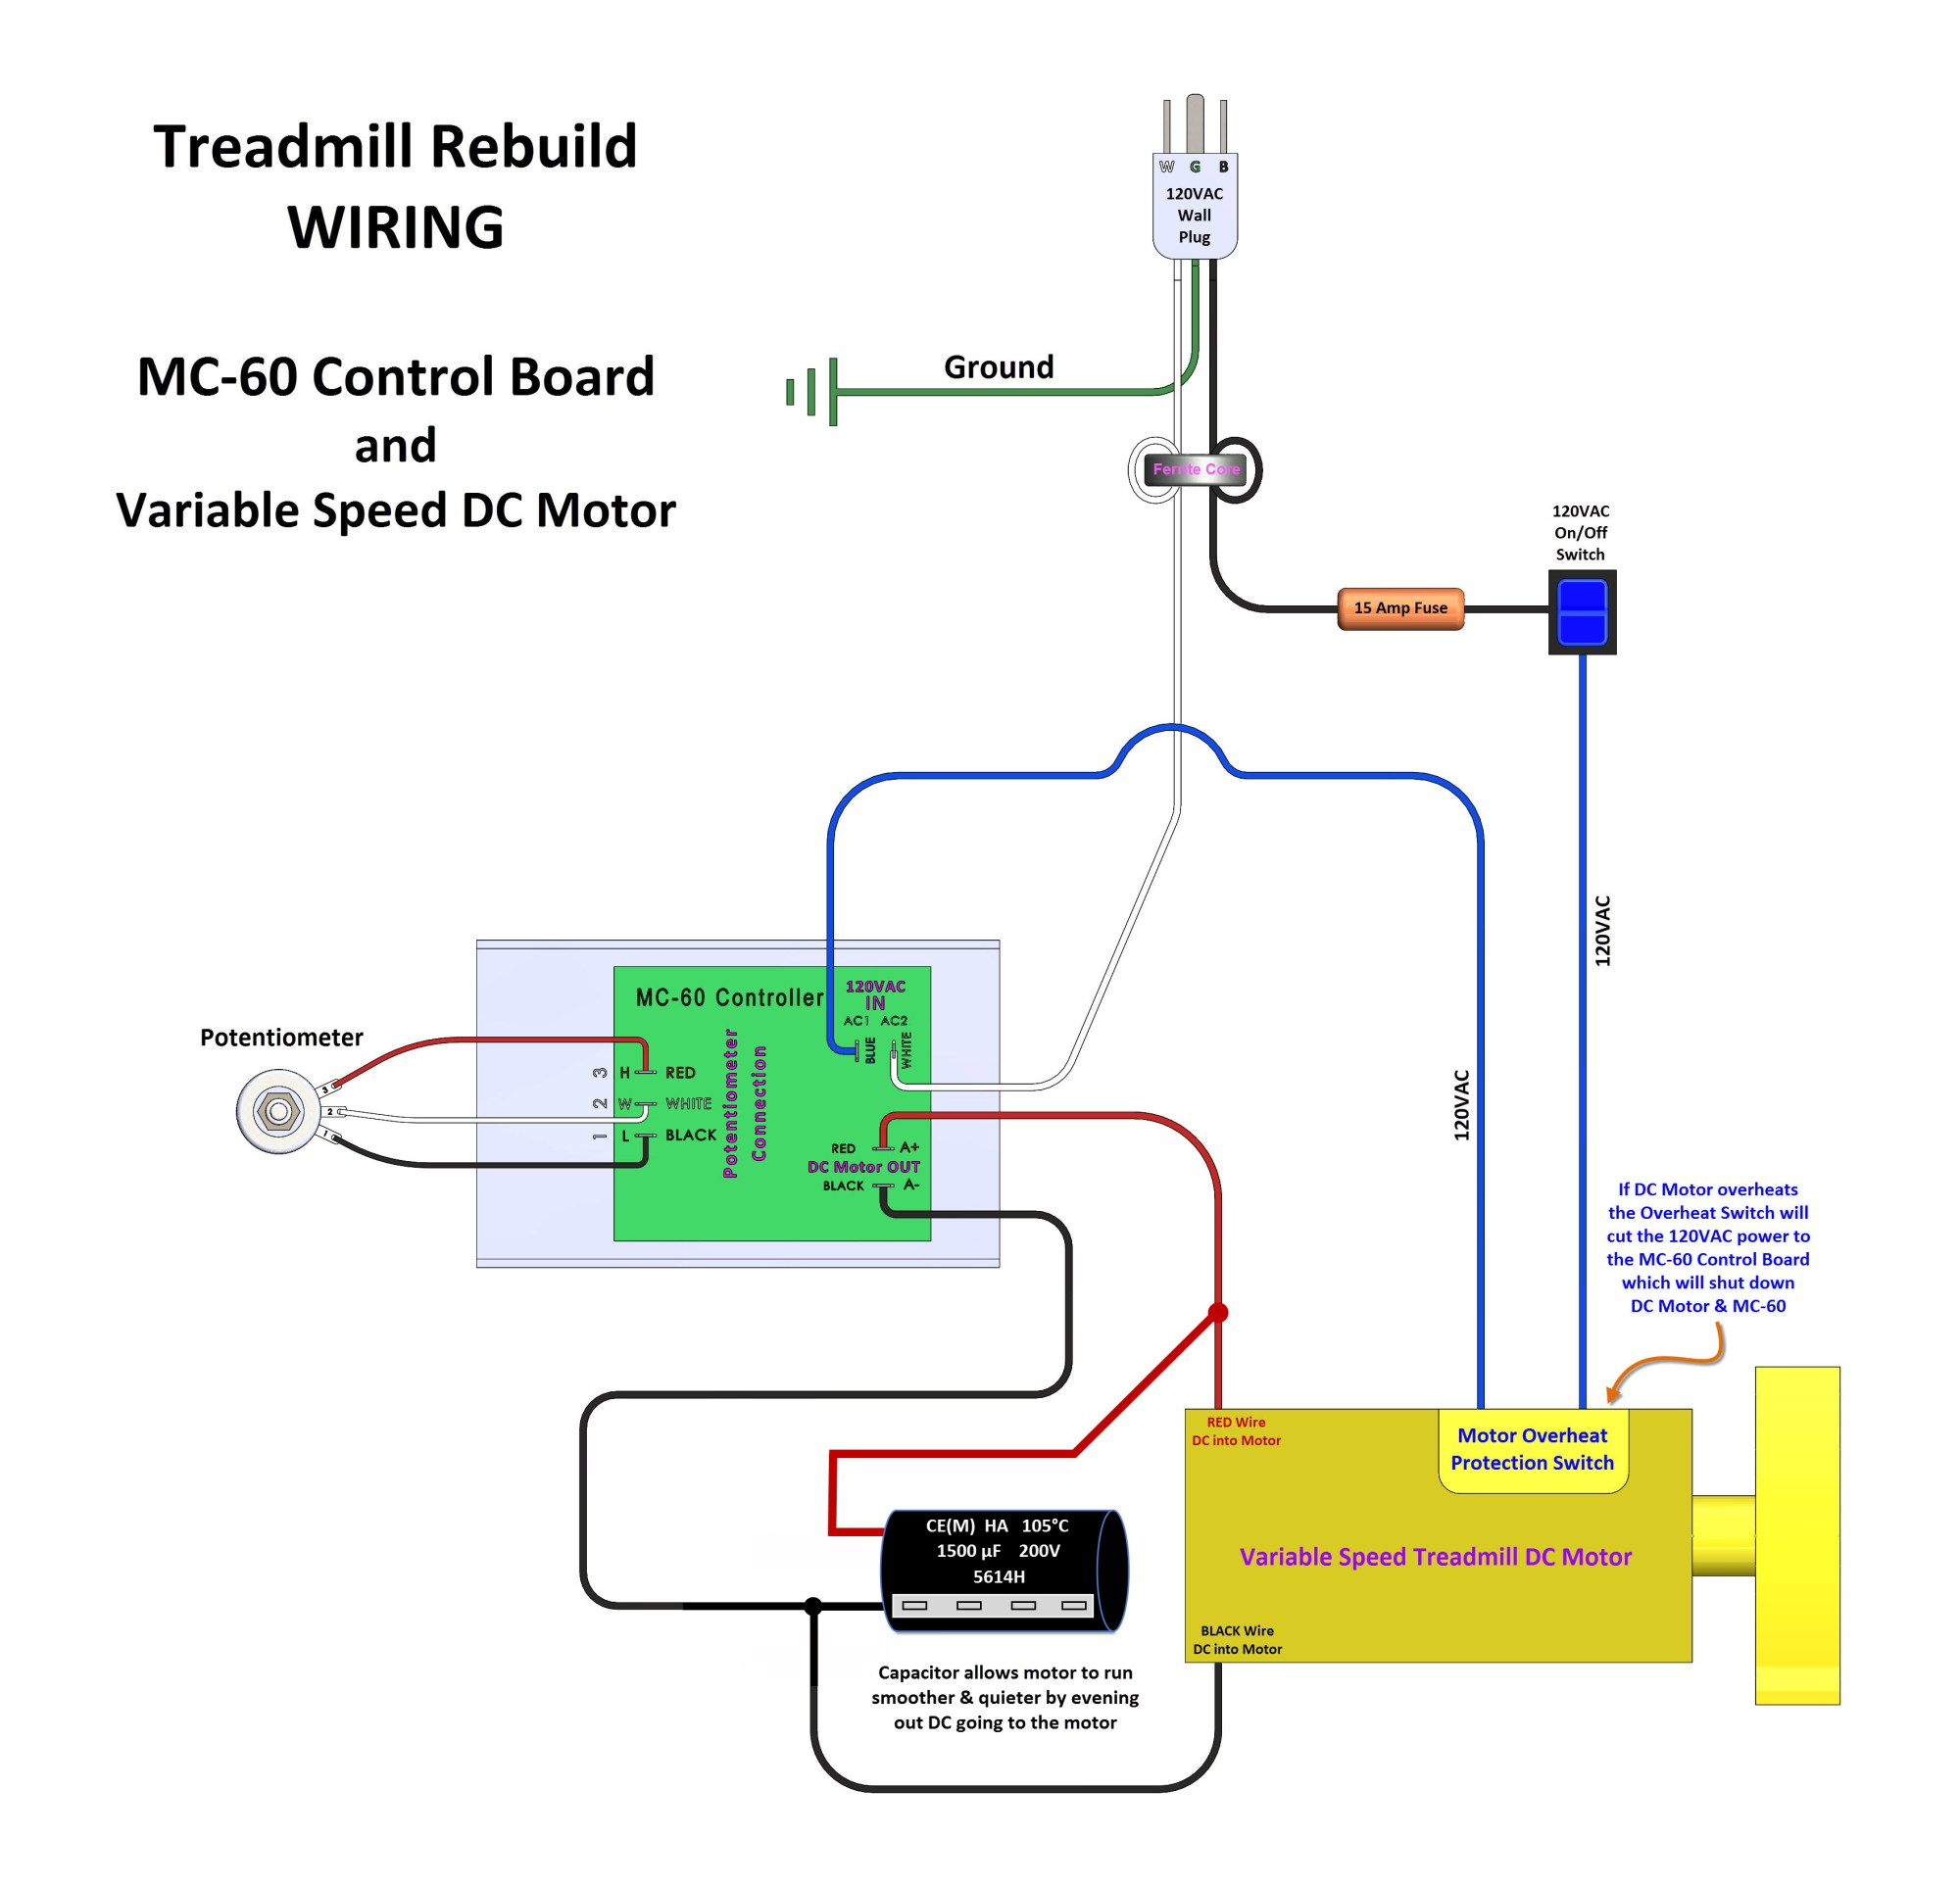 hight resolution of treadmill mc 60 control wiring with 1500 f 200v capacitor